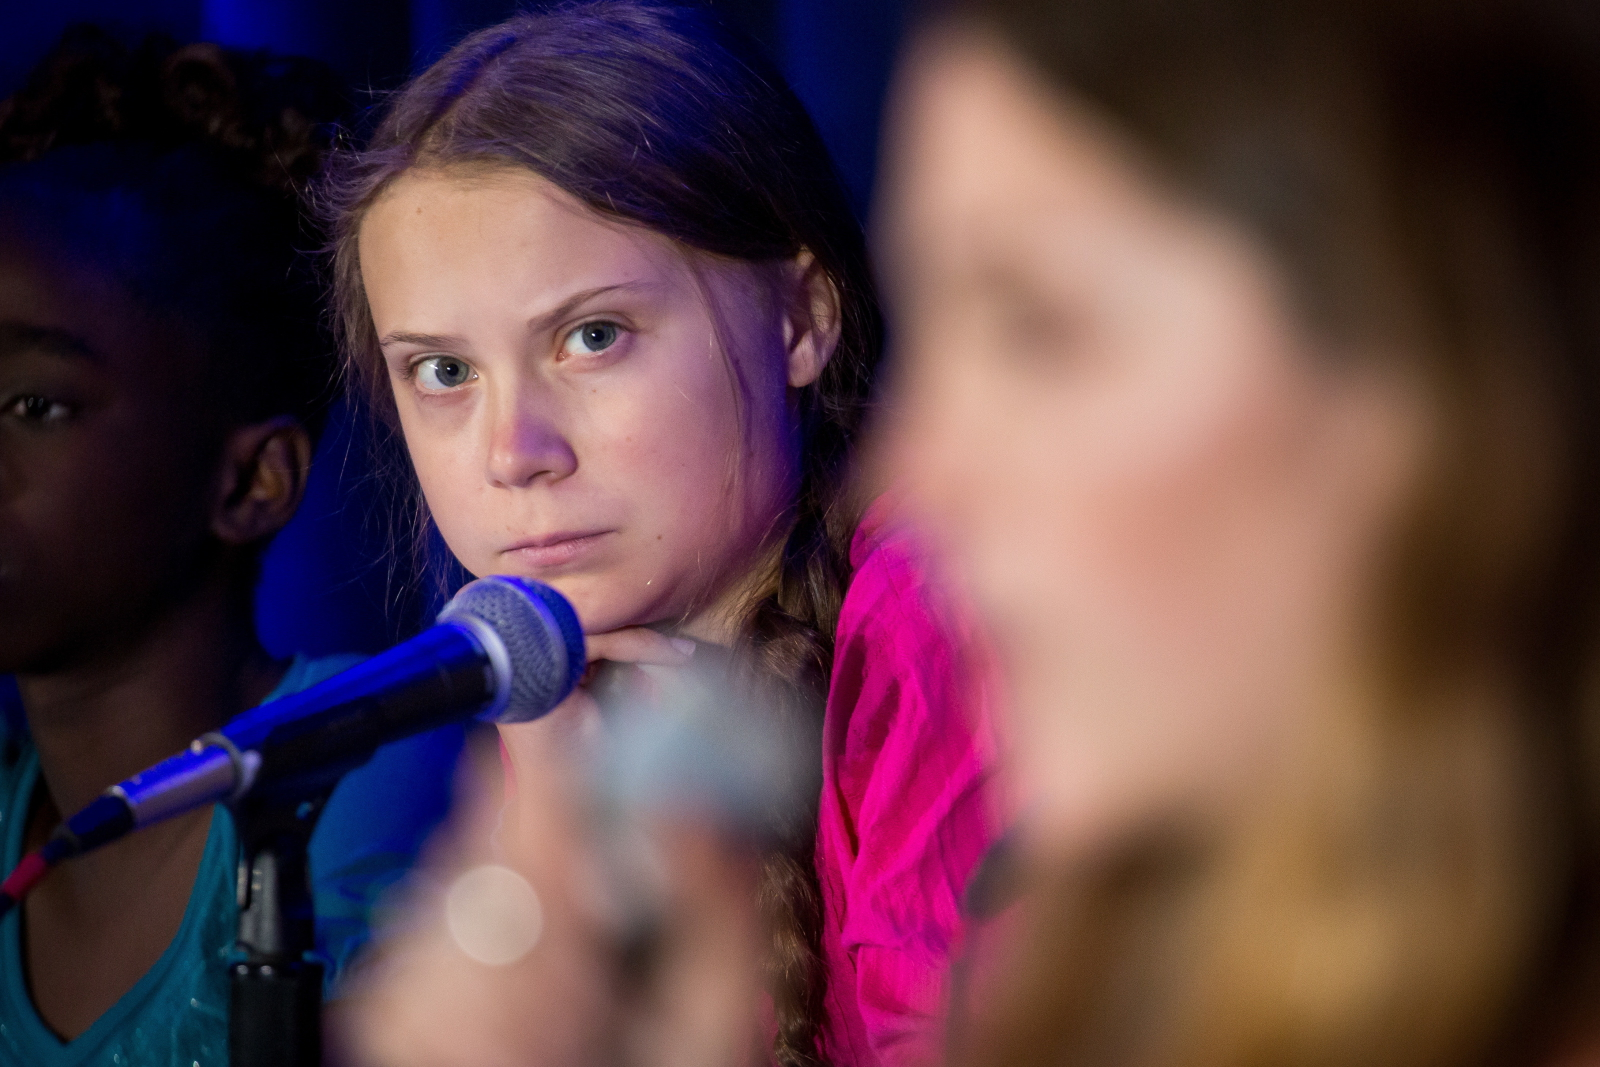 Official Climate Crisis Complaint filed by 16 international children